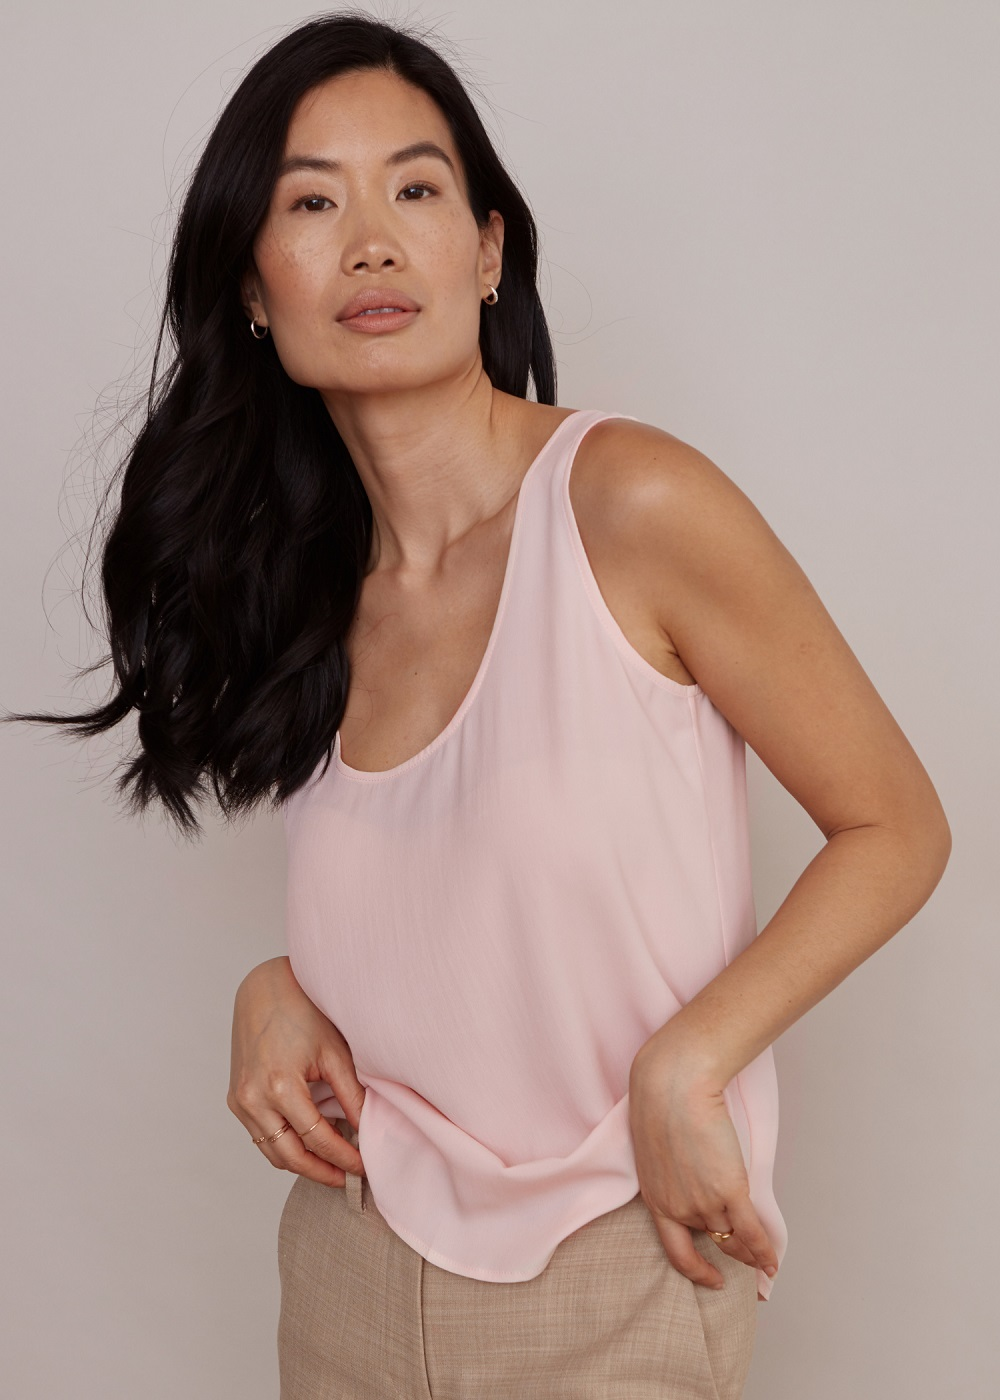 Elevated women's basics brand Numi launched a Sustainable Silk line, including a button-up, short-sleeve blouse, tank top and classic cami.